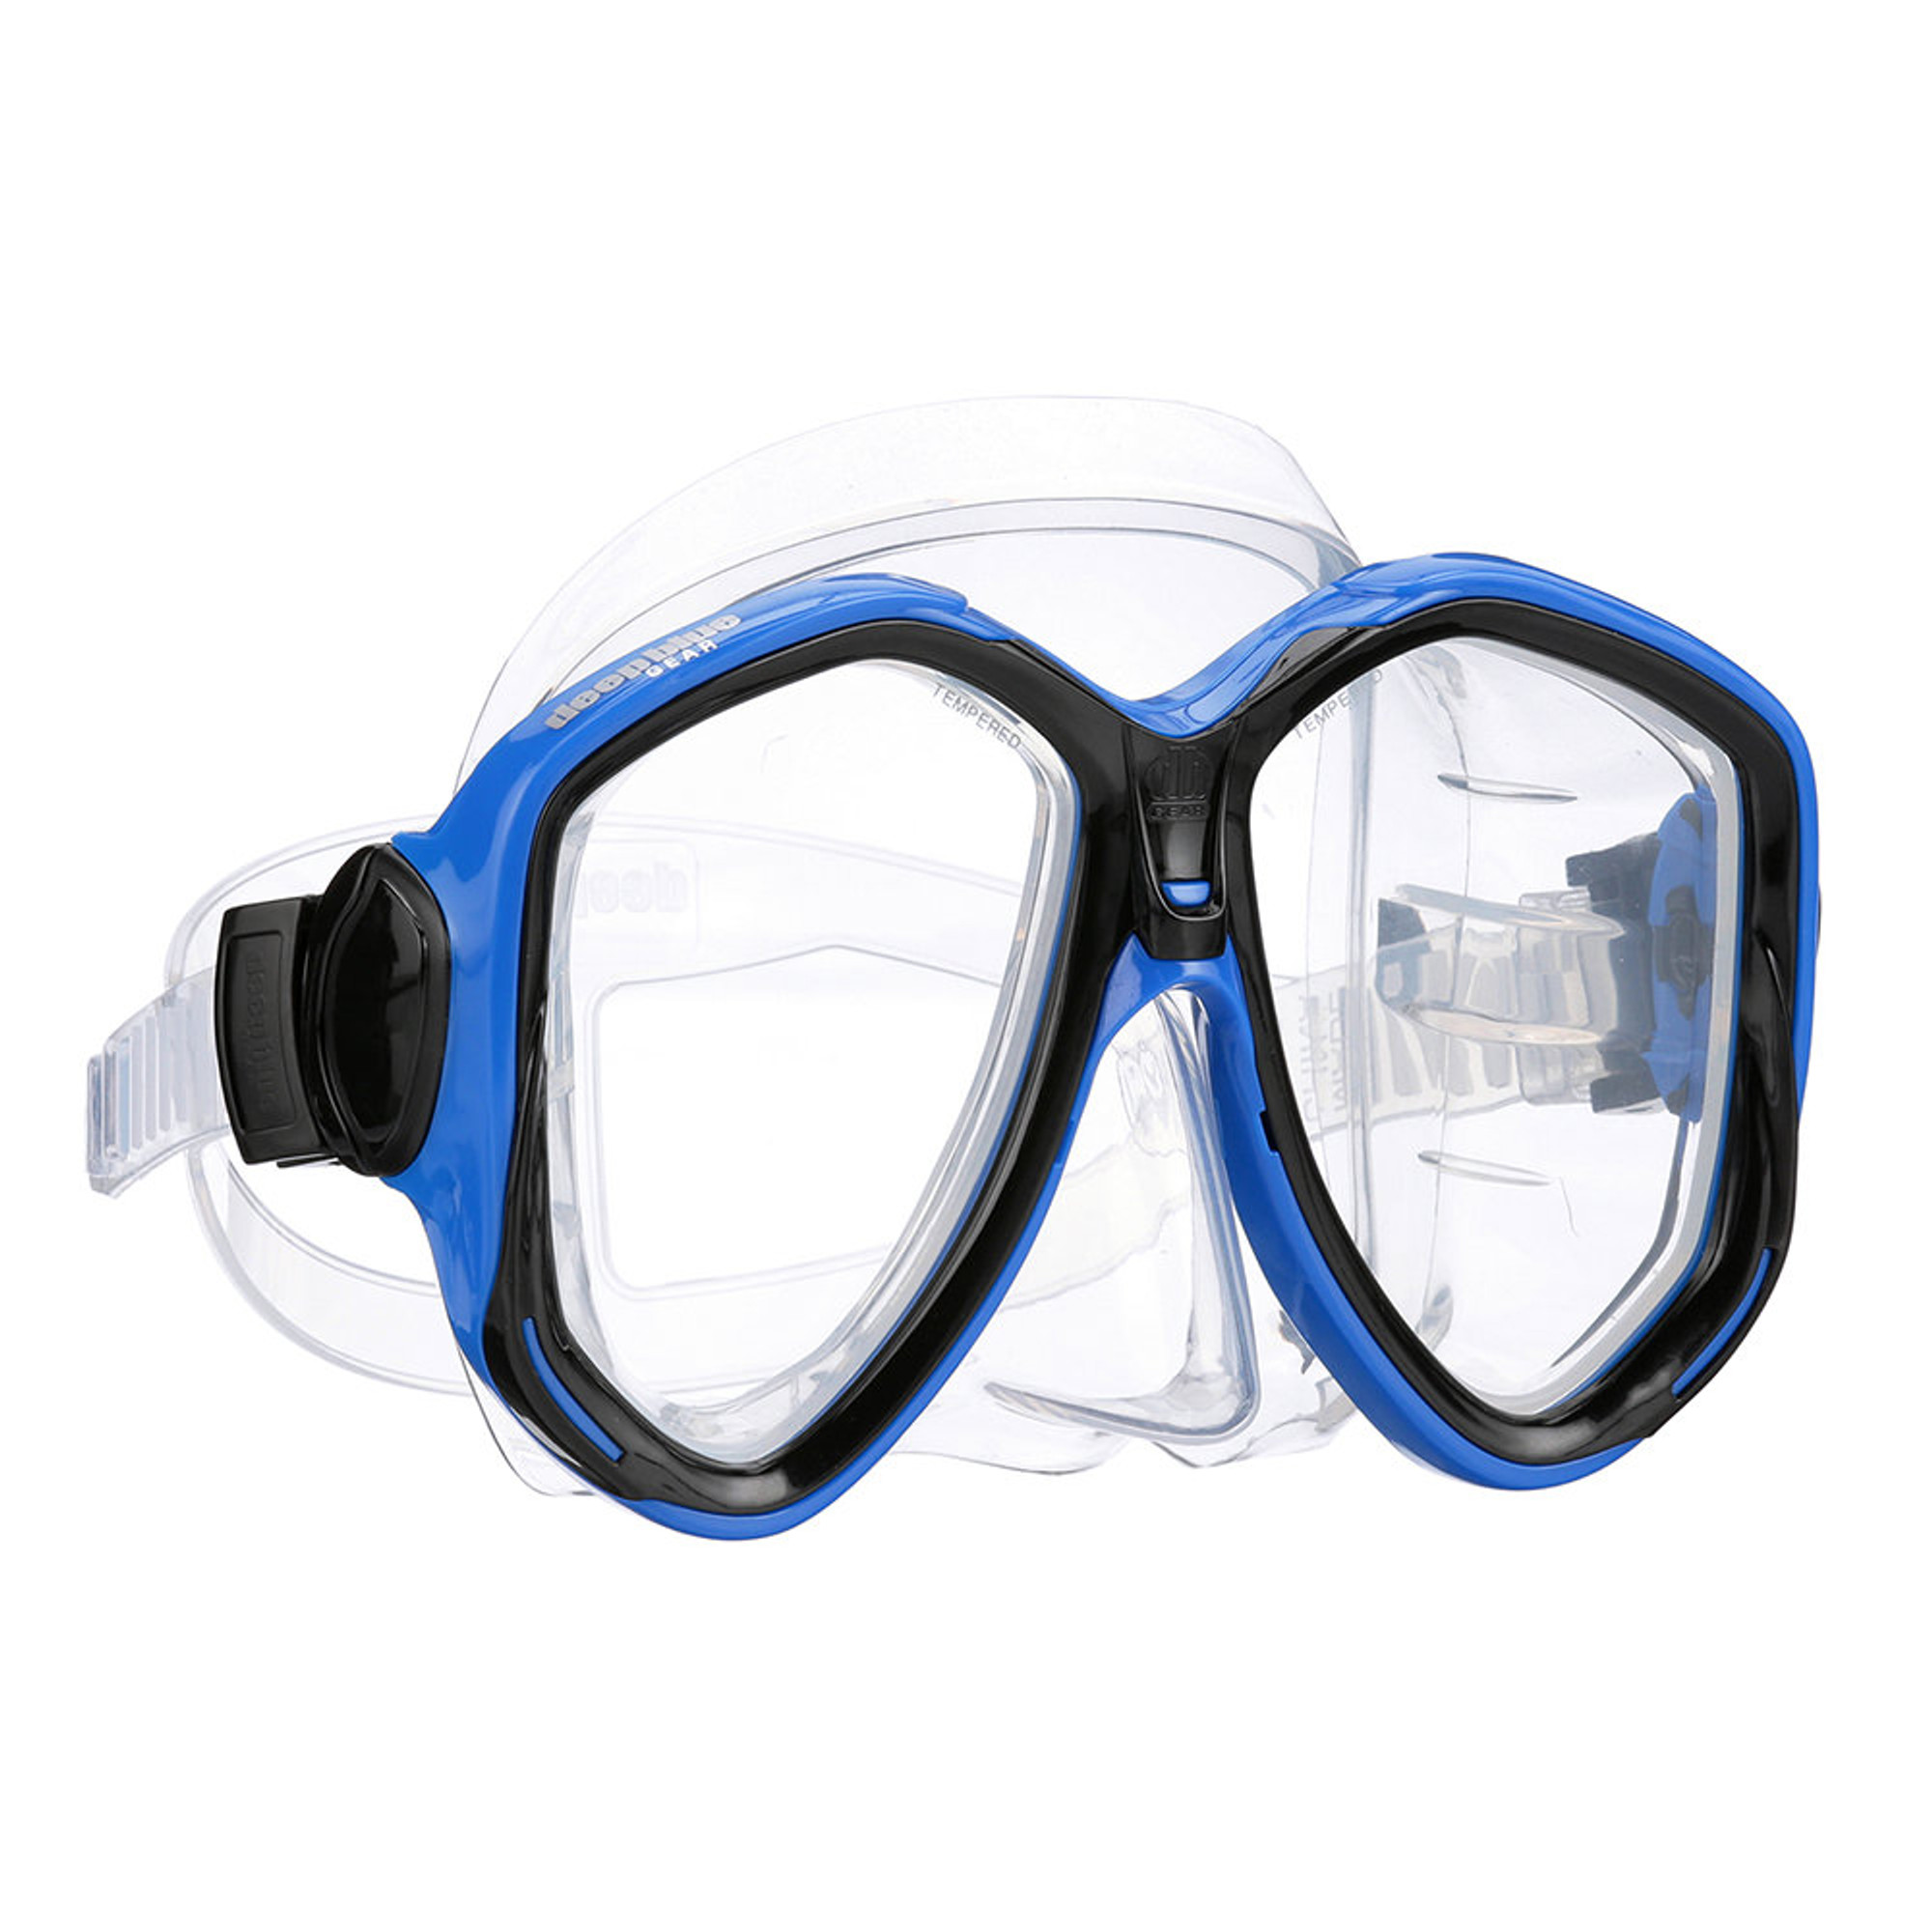 Super Vue 2 - Diving/Snorkeling Mask